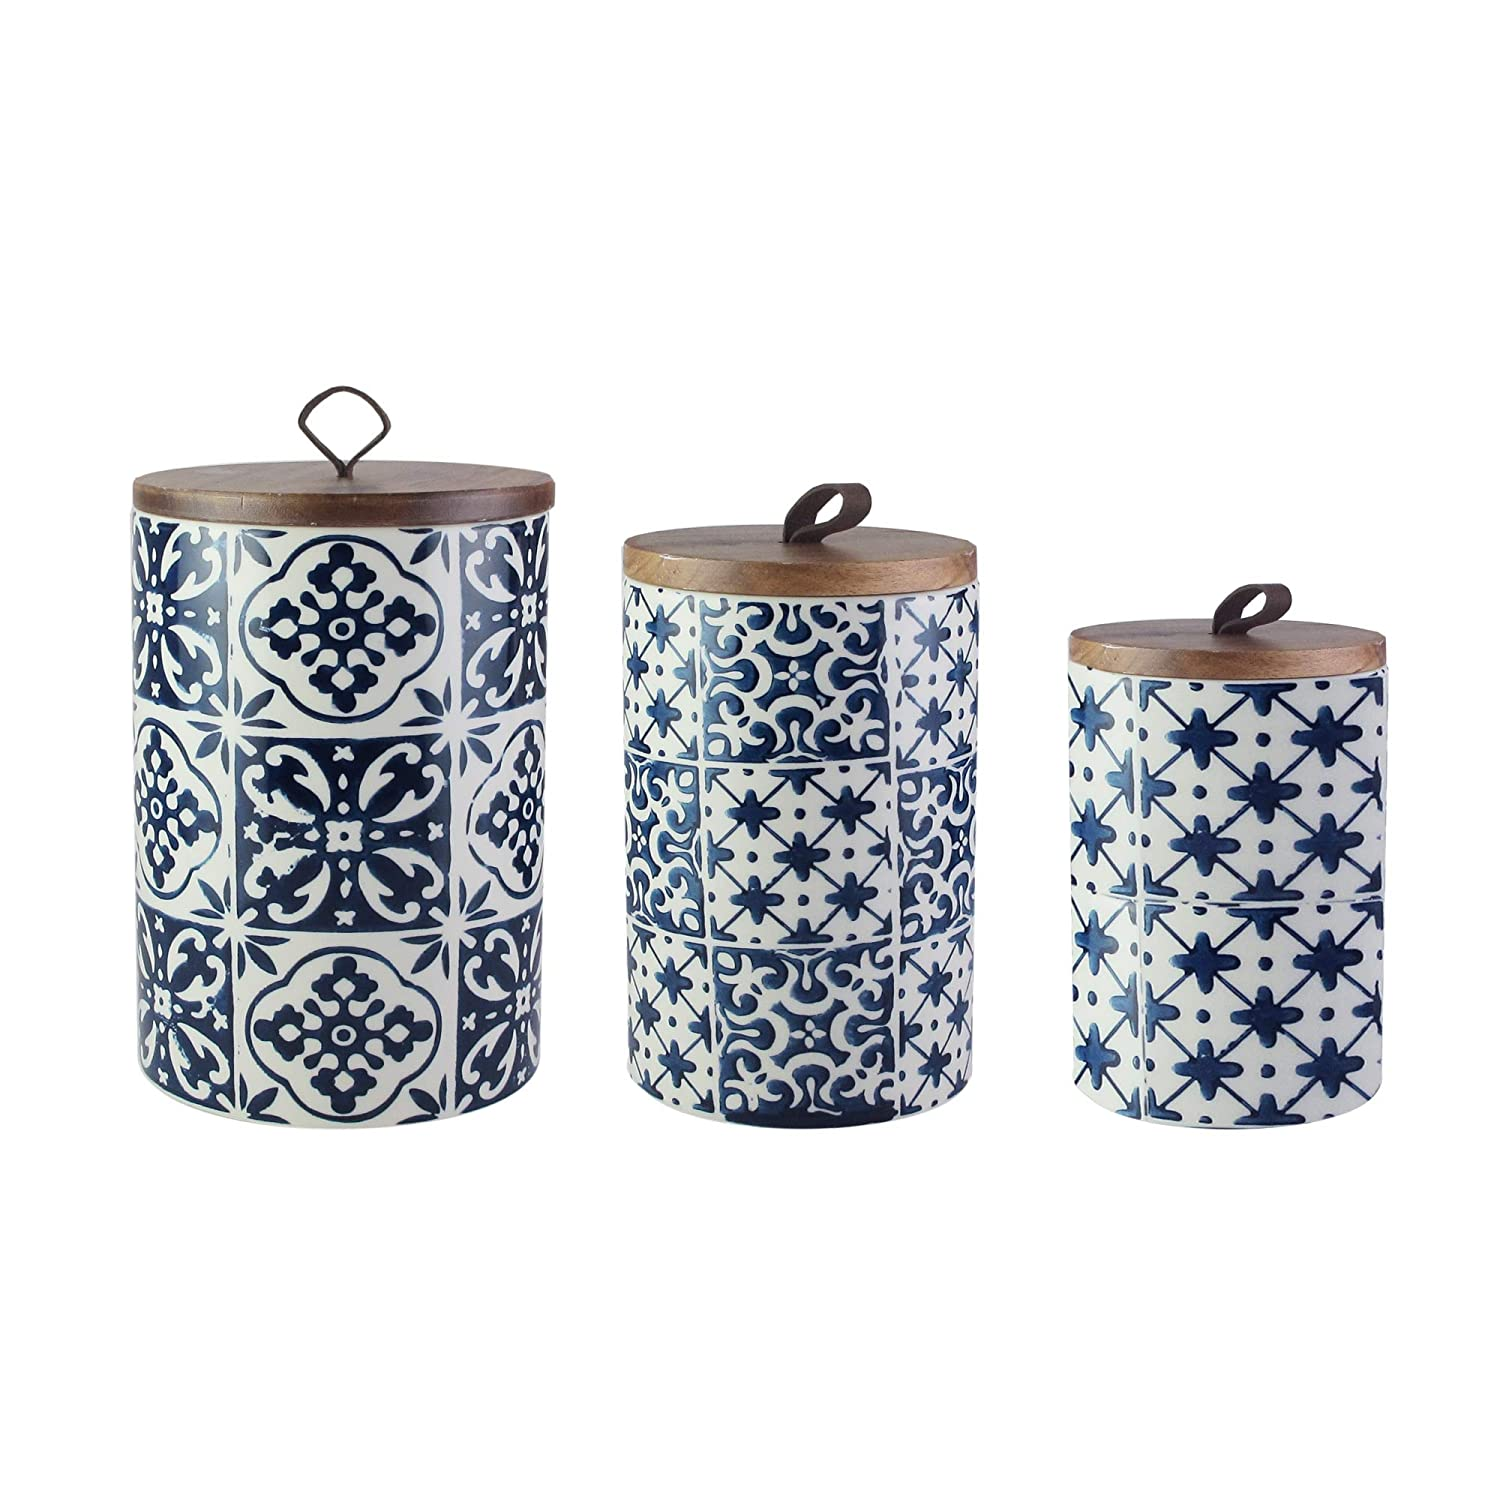 American Atelier Ceramic Canister Set with Wooden Lids Jar Container for Kitchen Food Storage Medallions Blue 3 Piece Set 7106-CAN-RB